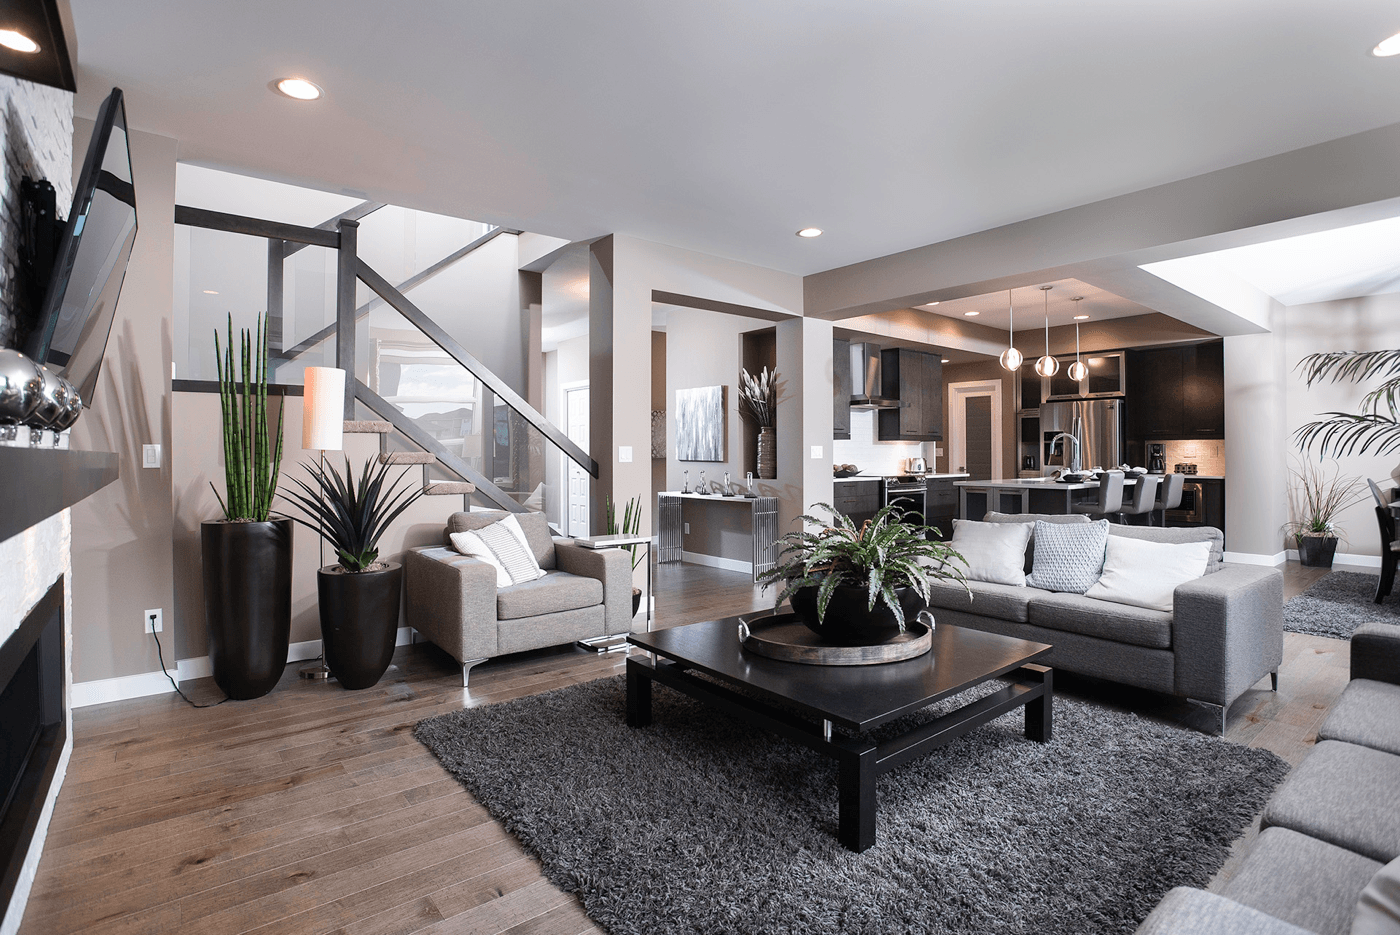 What Is a Show Home Exactly? Floor Plan Image